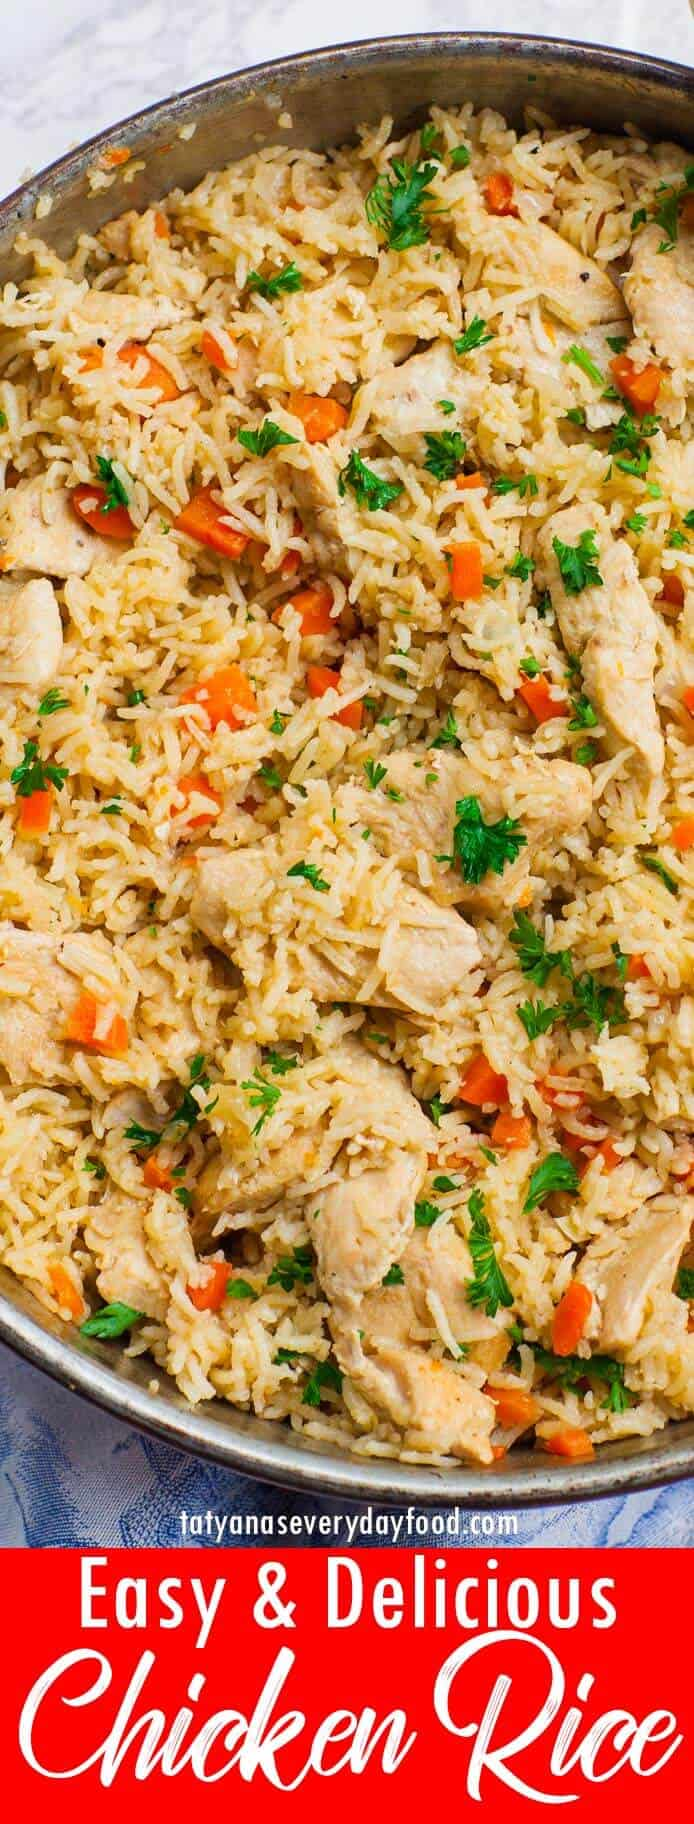 Easy Chicken Rice Pilaf video recipe